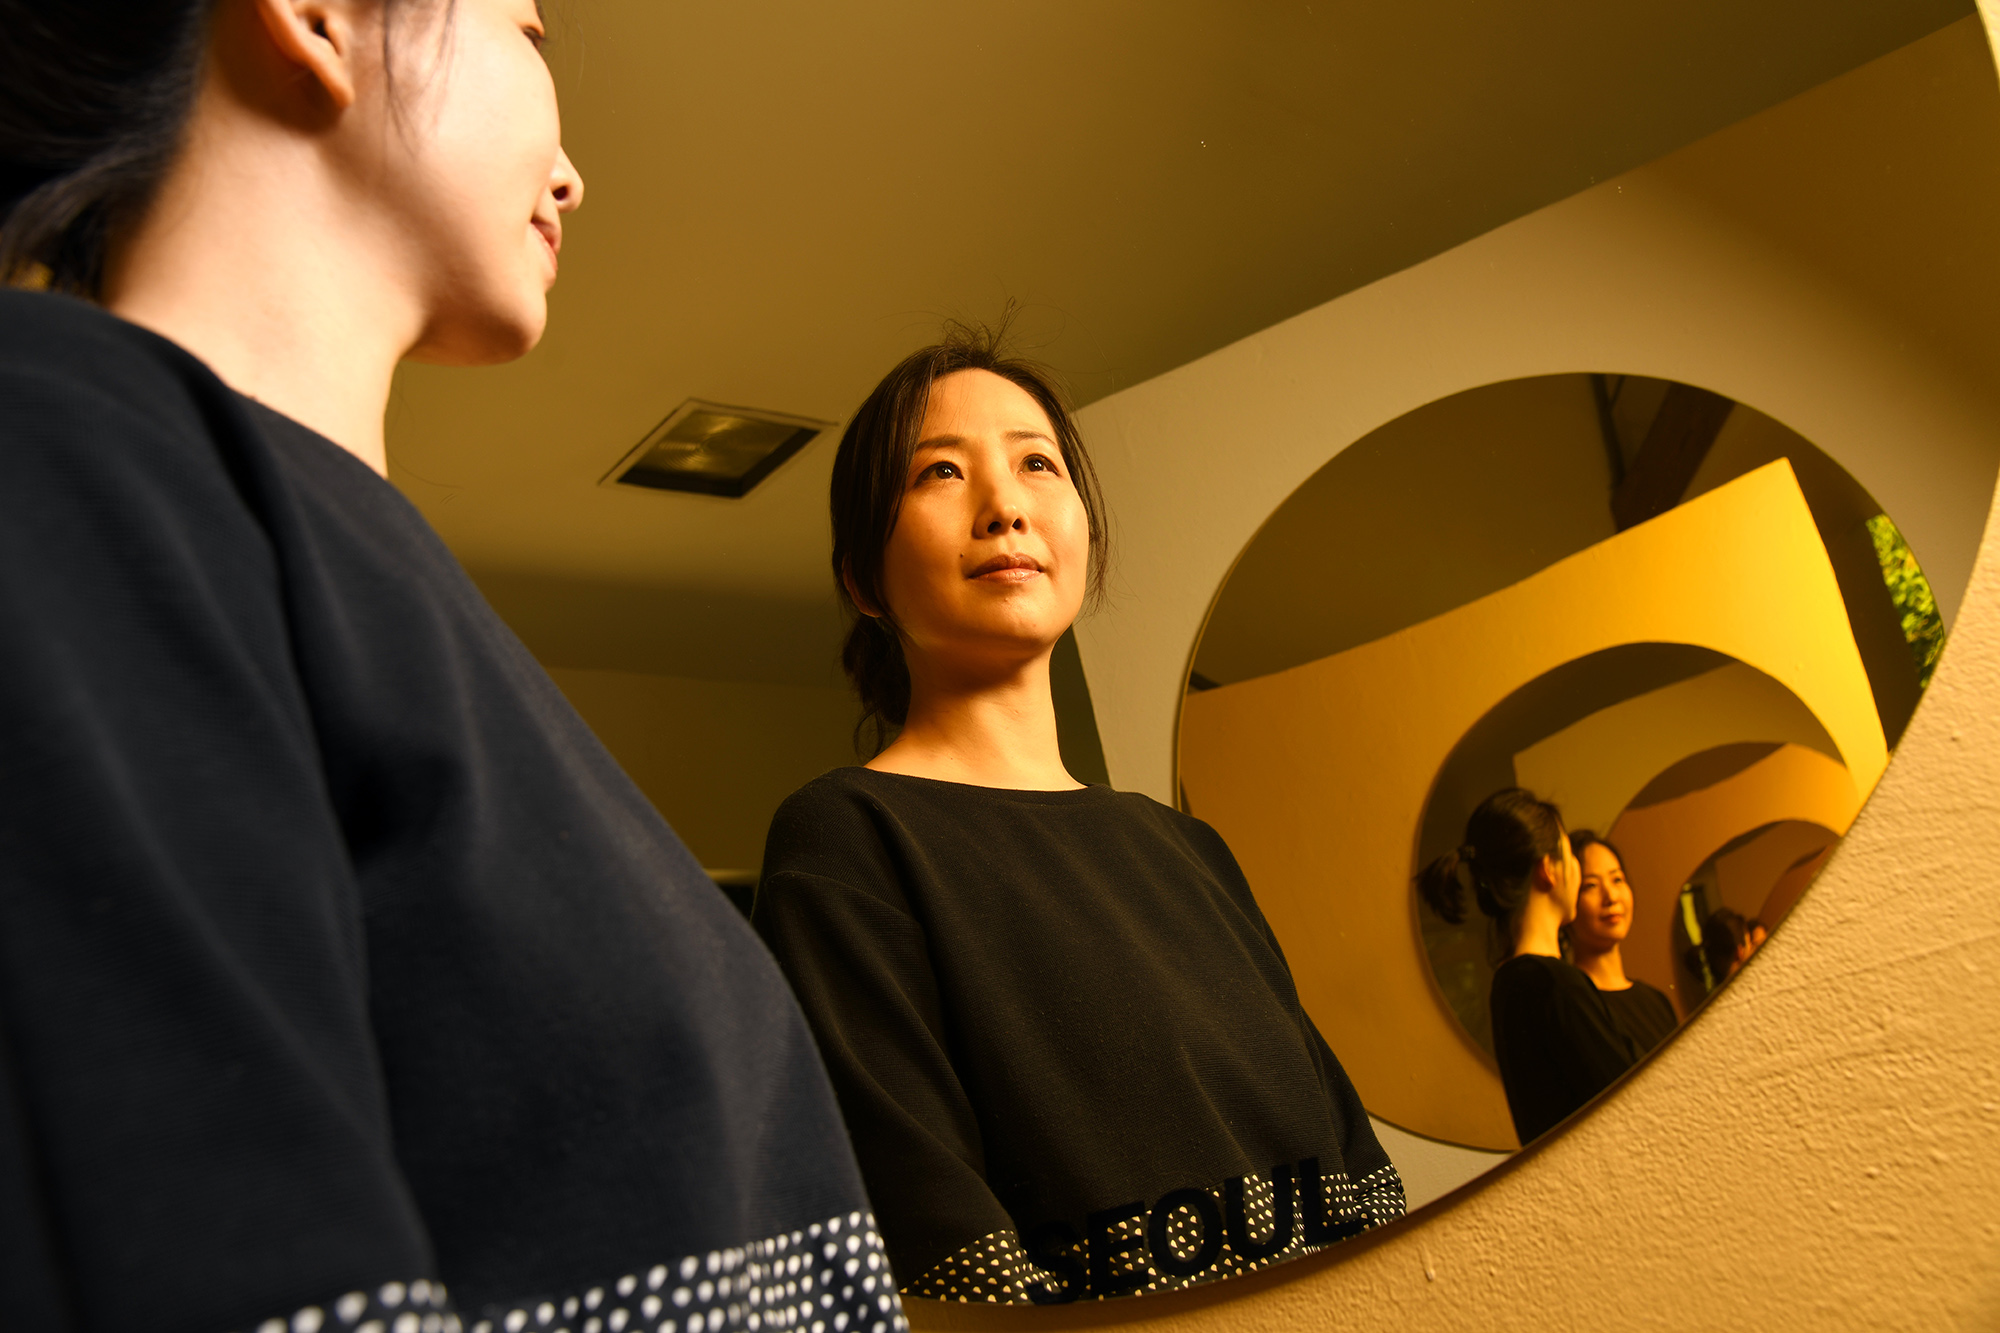 Woman standing between two mirrors